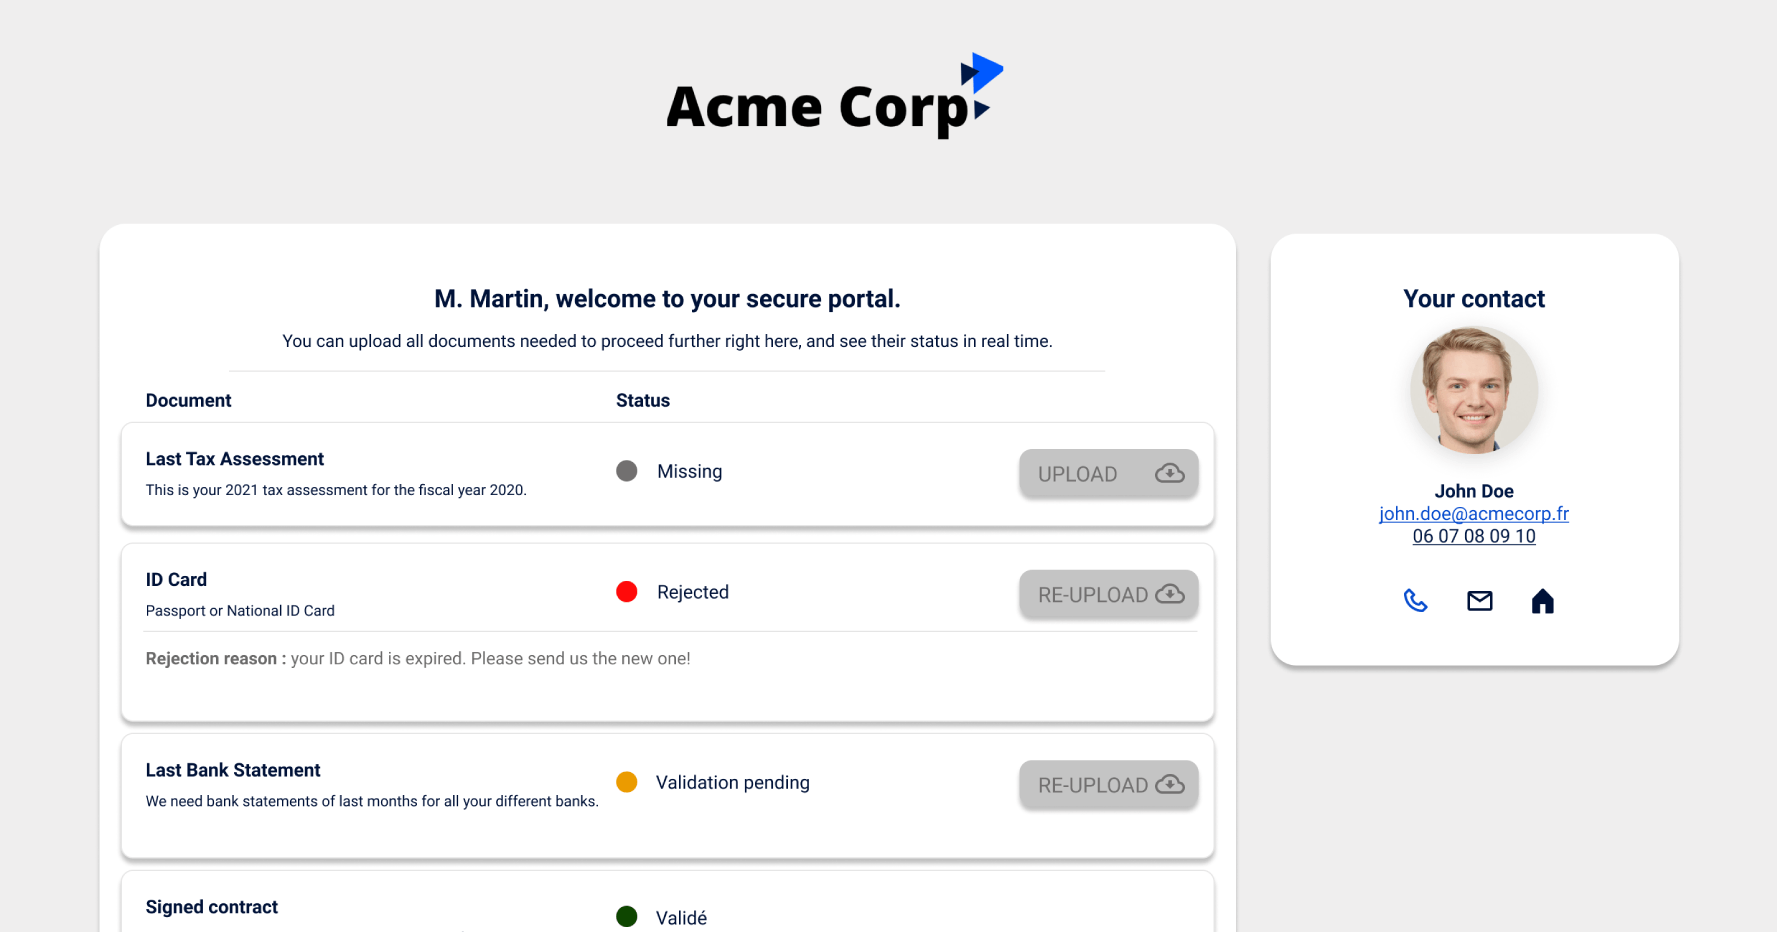 Branded portal example for your contacts